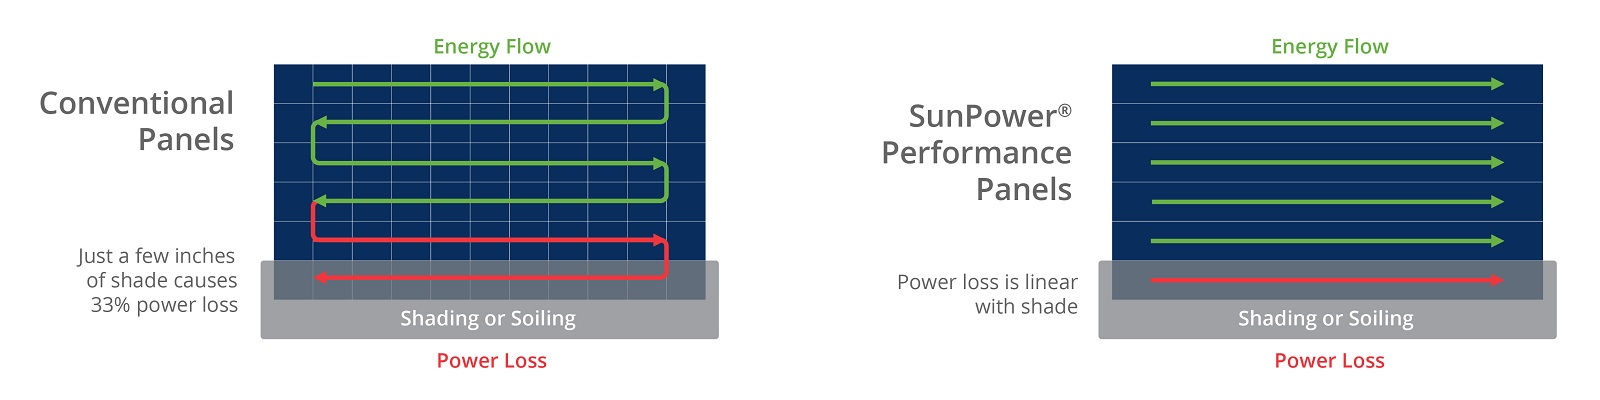 SunPower P-Series energy flow comparison graphic